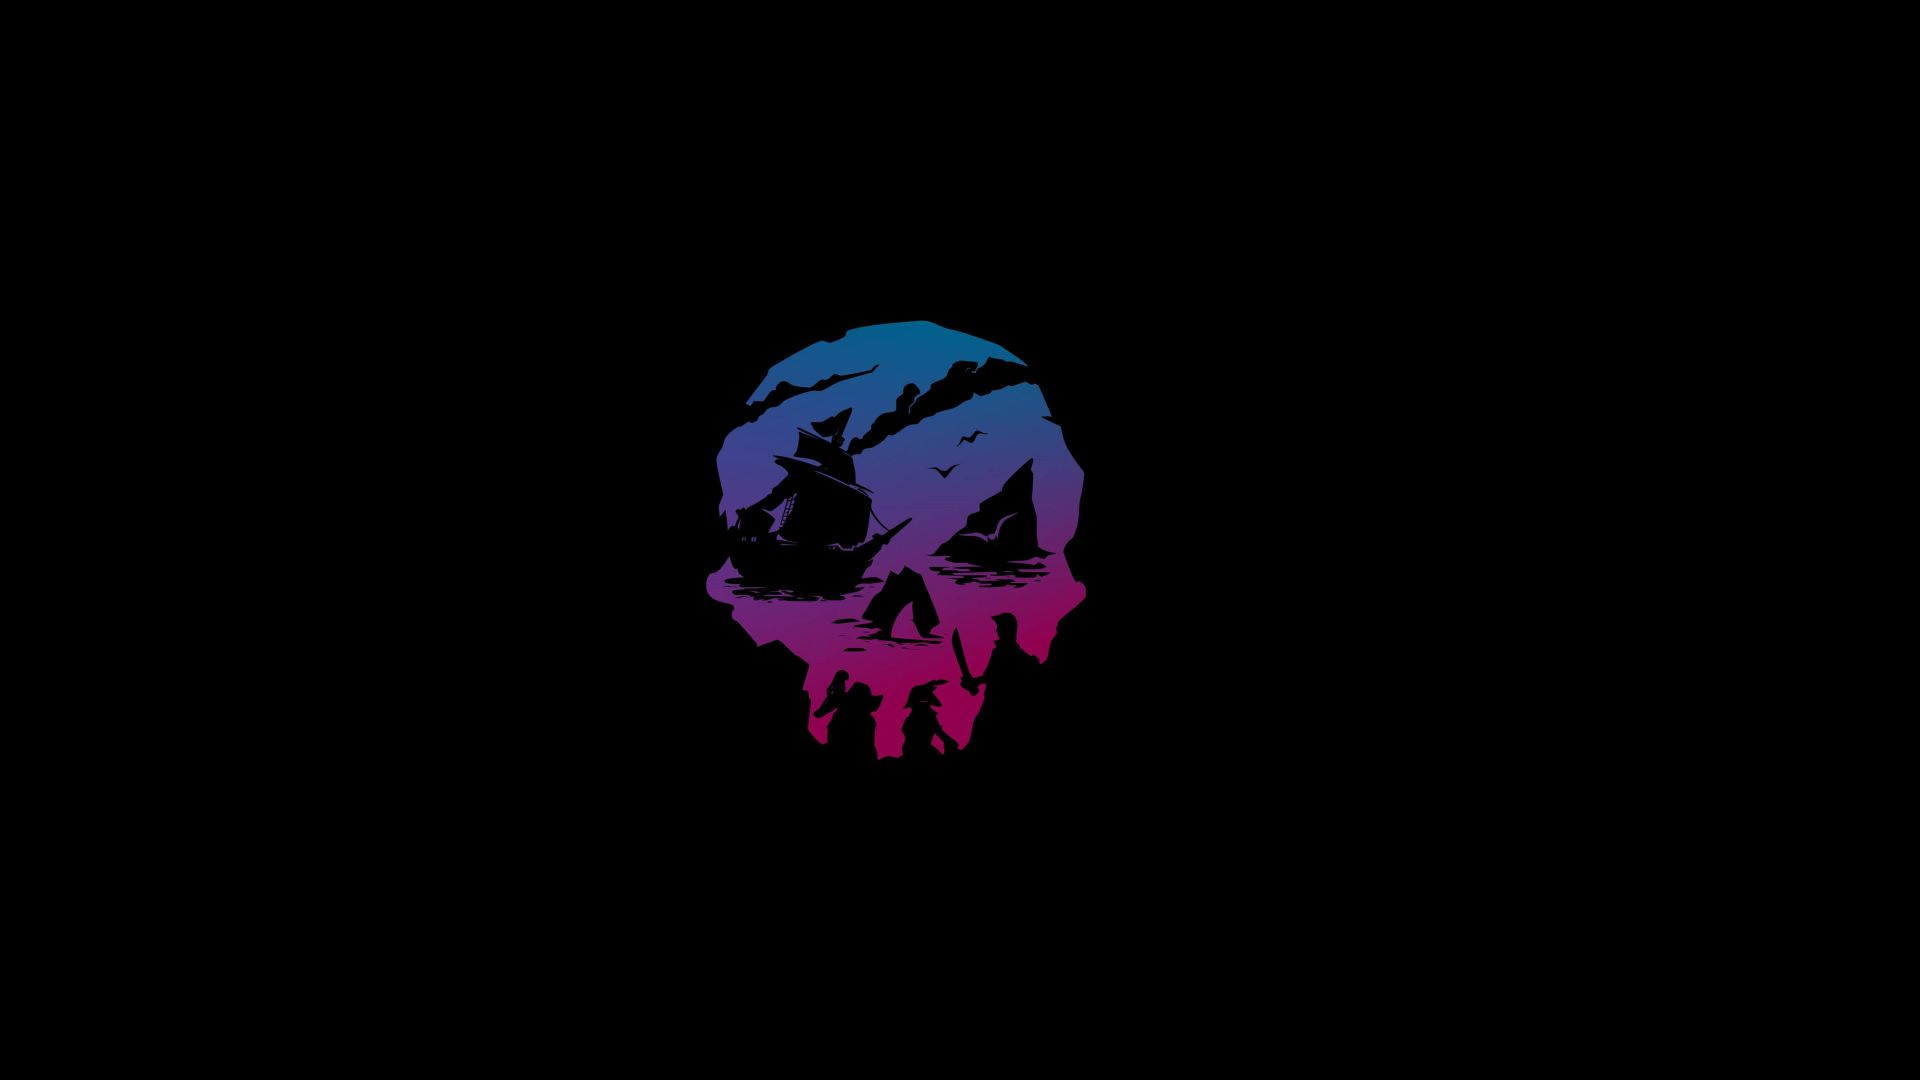 1920x1080px Free Download Hd Wallpaper Sea Of Thieves Neon Skull Video Game In 2021 4k Gaming Wallpaper Gaming Wallpapers Computer Wallpaper Desktop Wallpapers